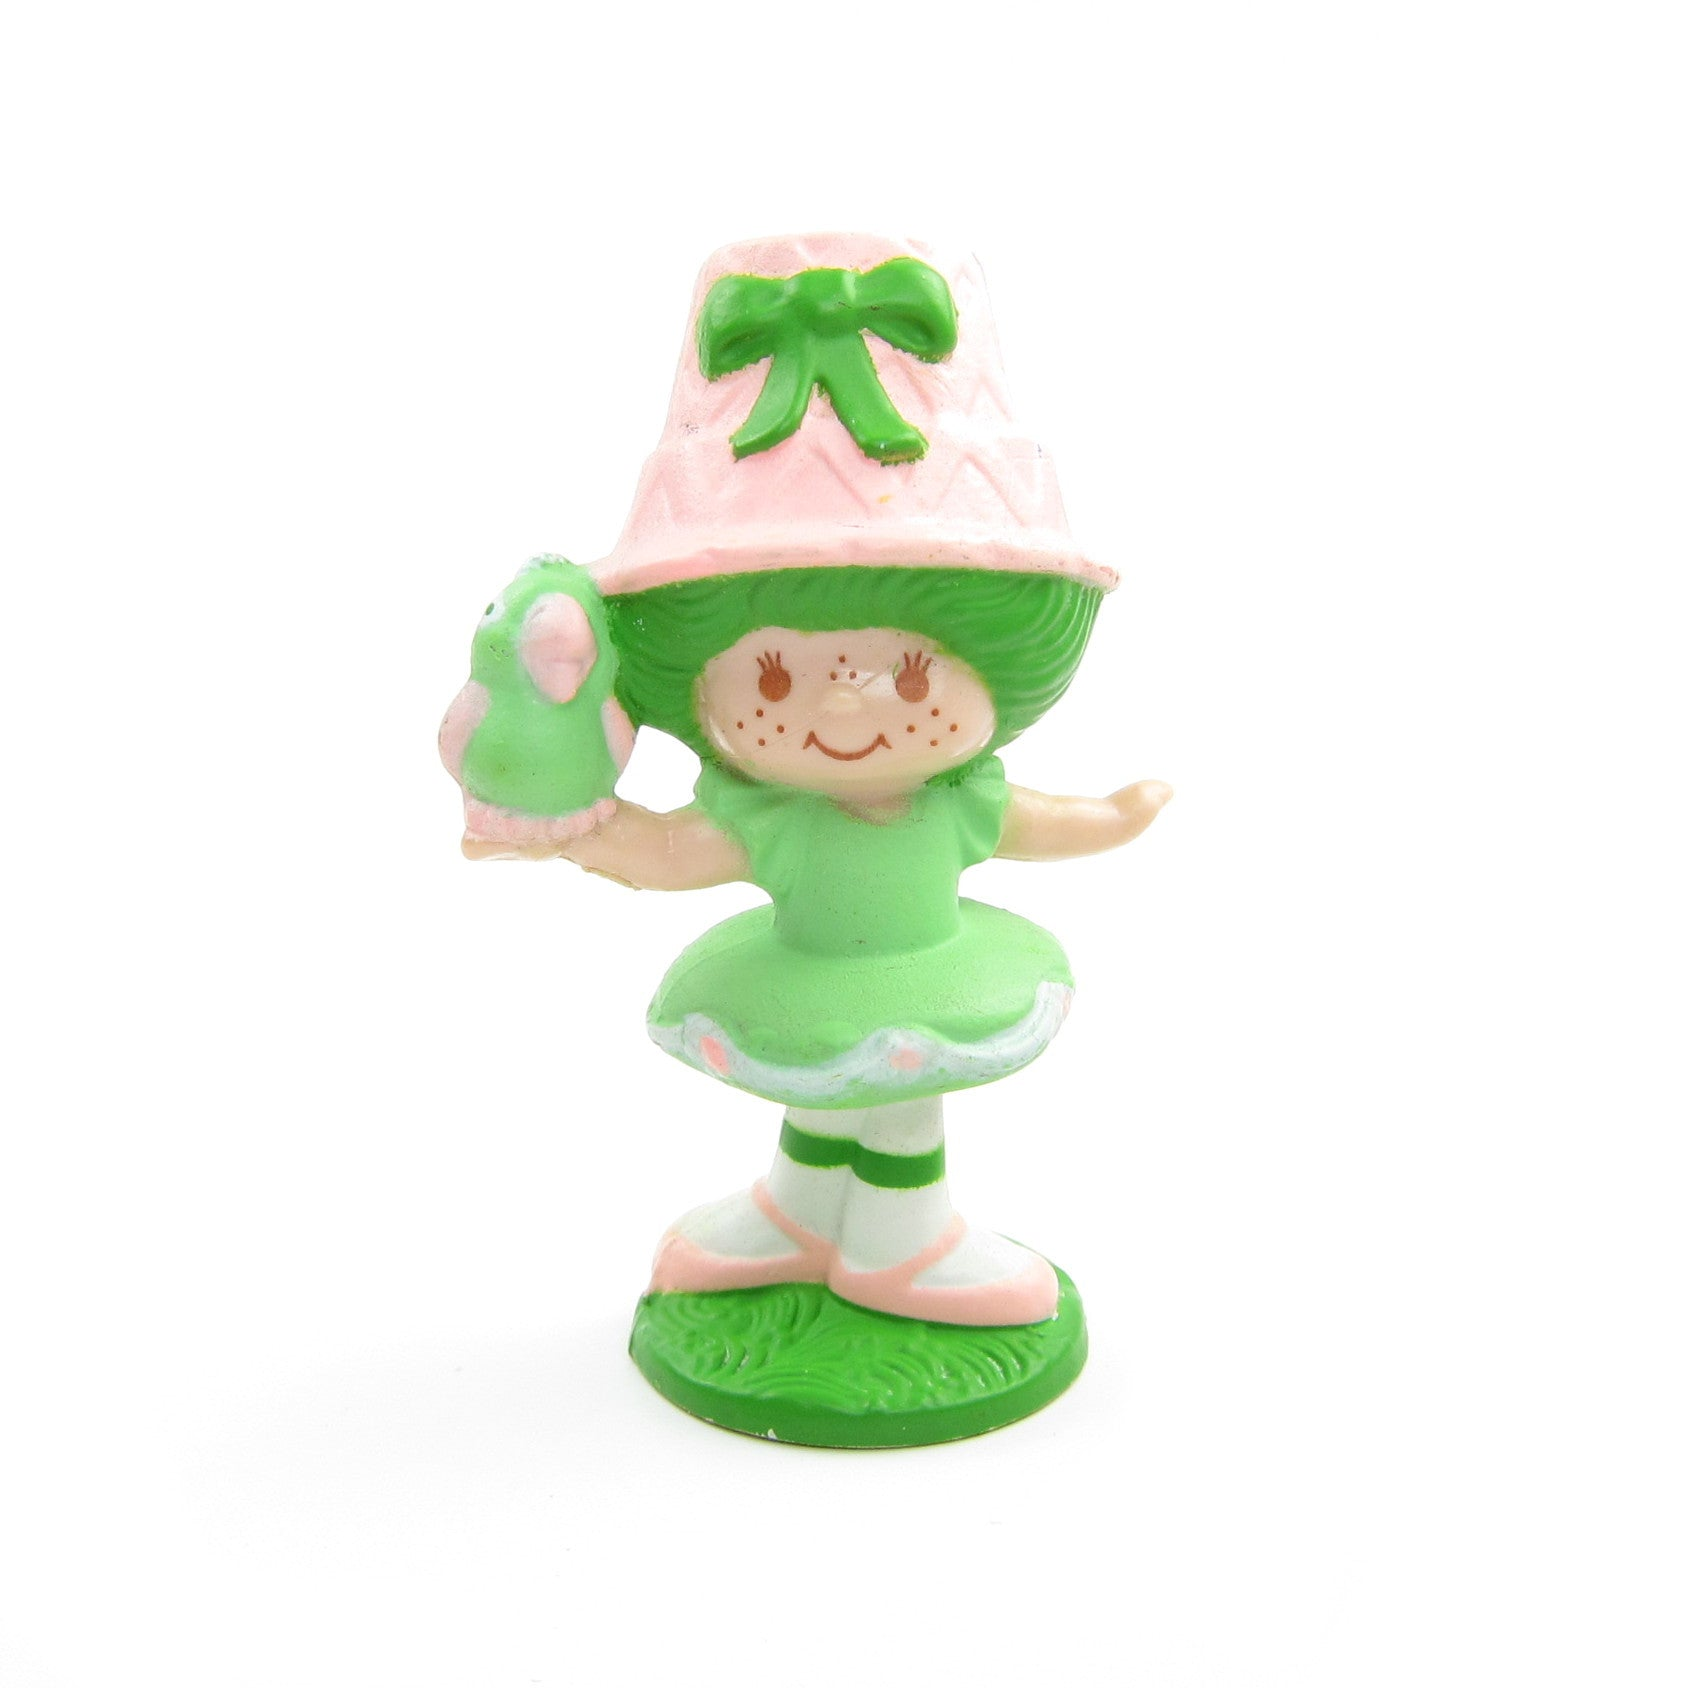 Lime Chiffon with Parfait Parrot miniature figurine